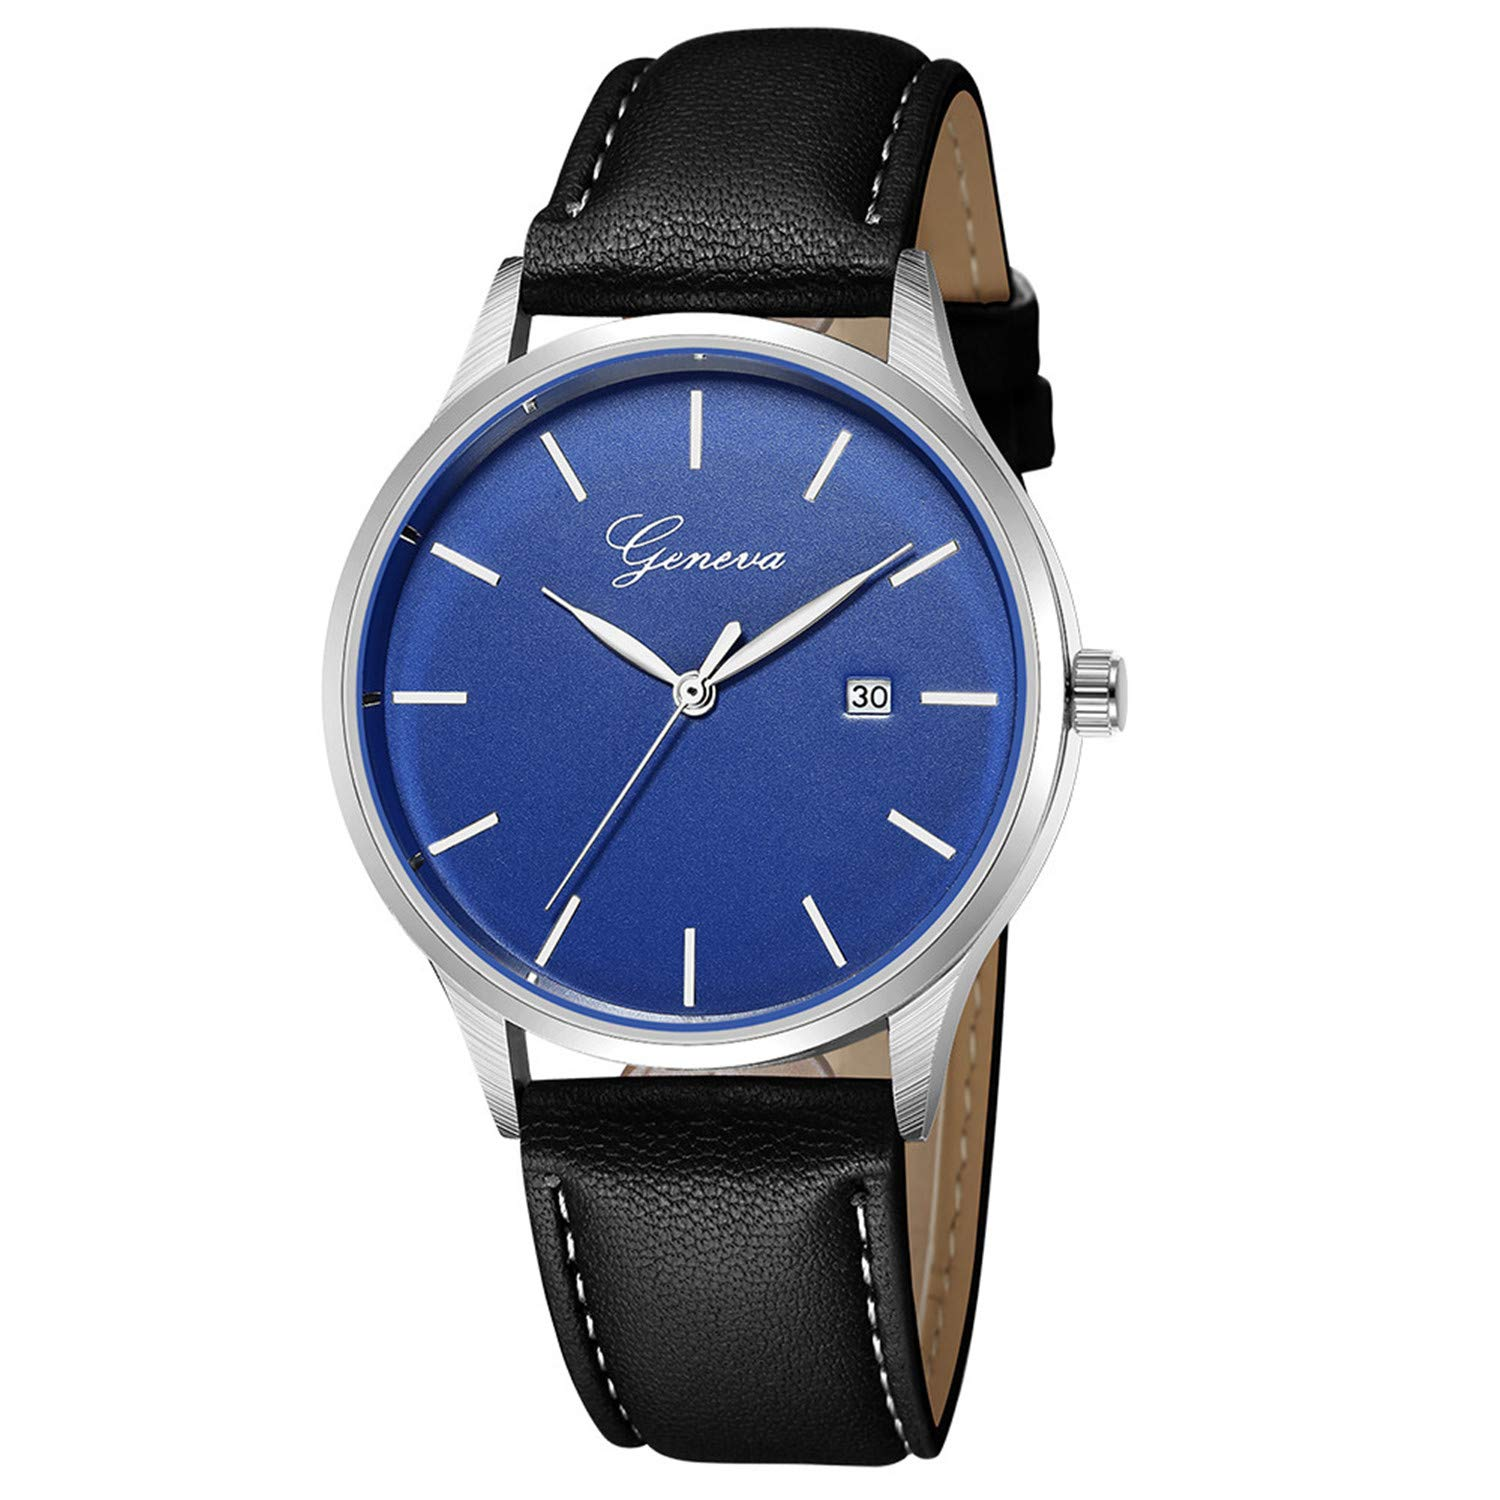 Amazon.com : freedomer Simple Mens Wrist Watch Top Luxury Leather Quartz Wrist Watch Men Sport Watch relojes para Hombre(D, 1) : Sports & Outdoors